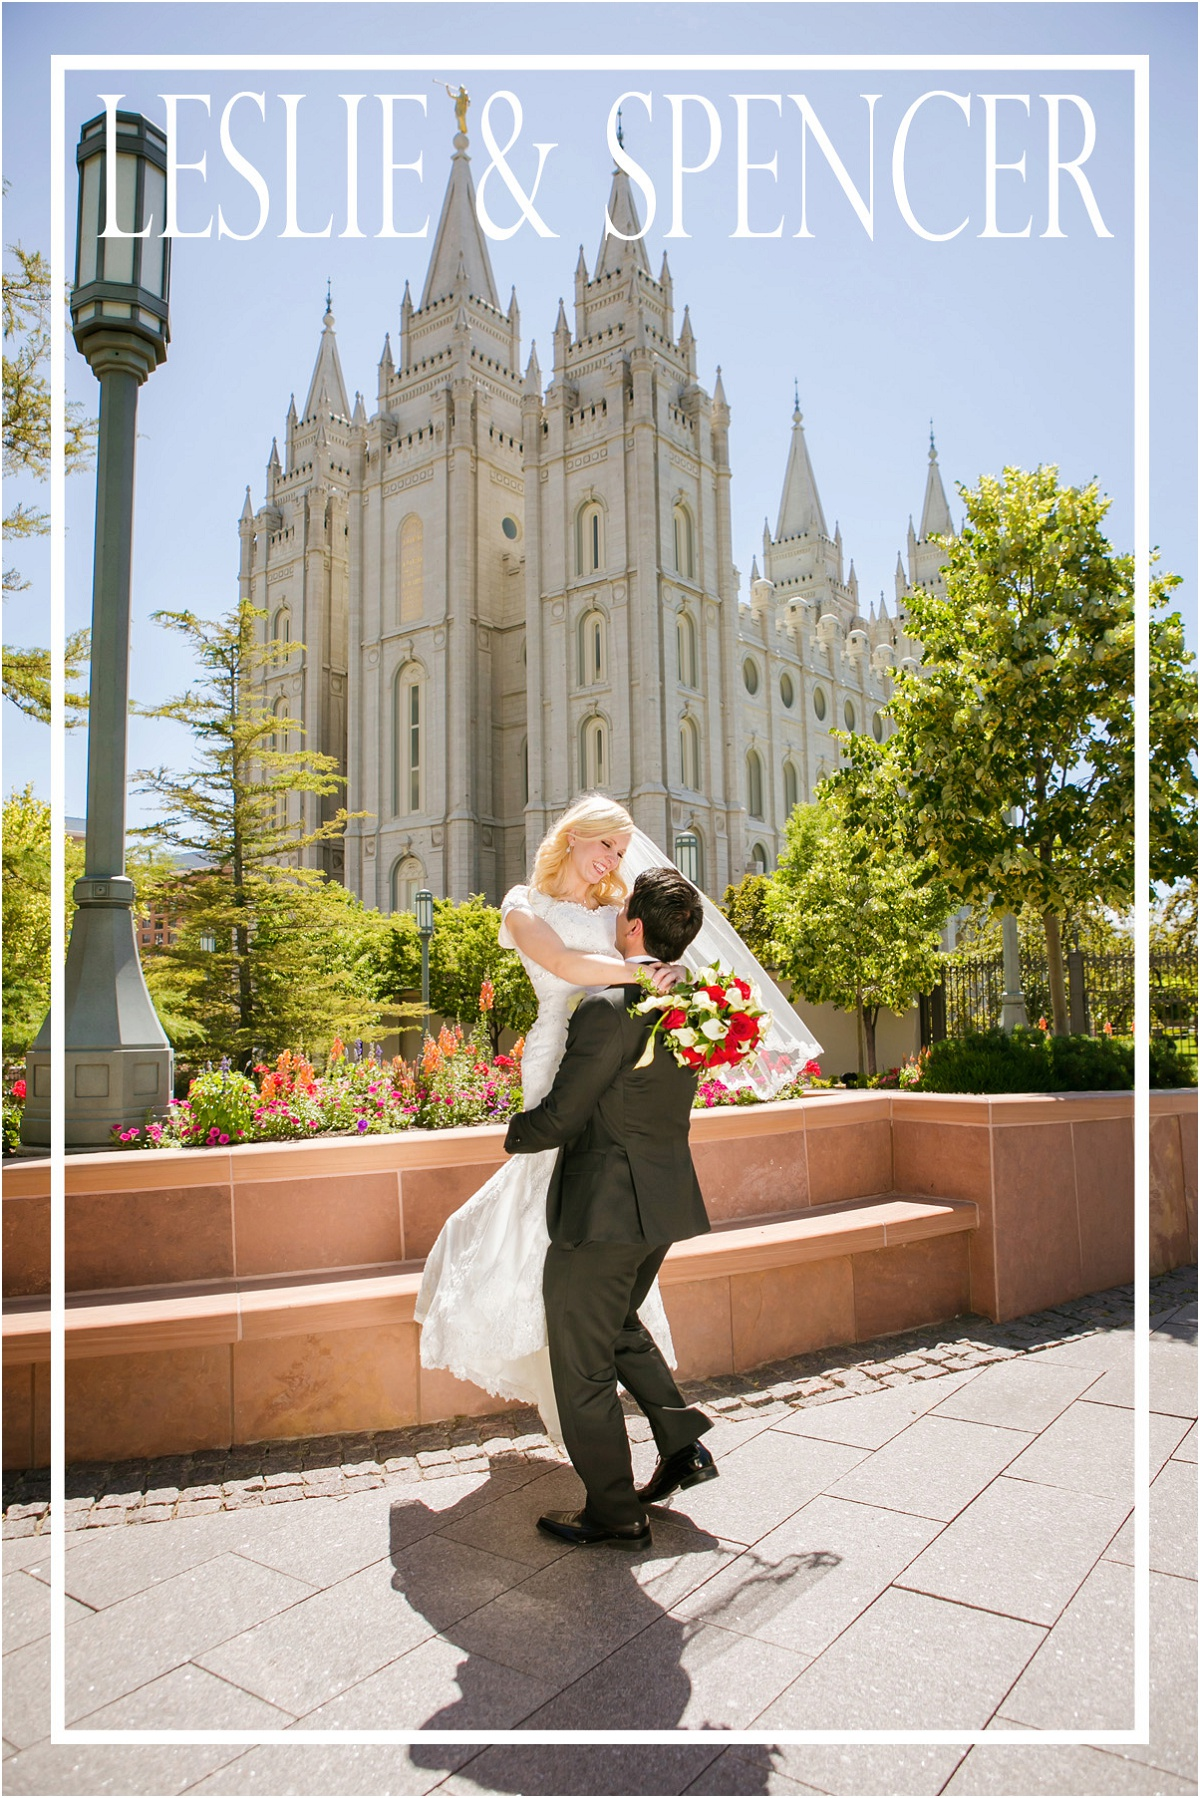 Terra Cooper Photography Weddings Brides 2015_5366.jpg